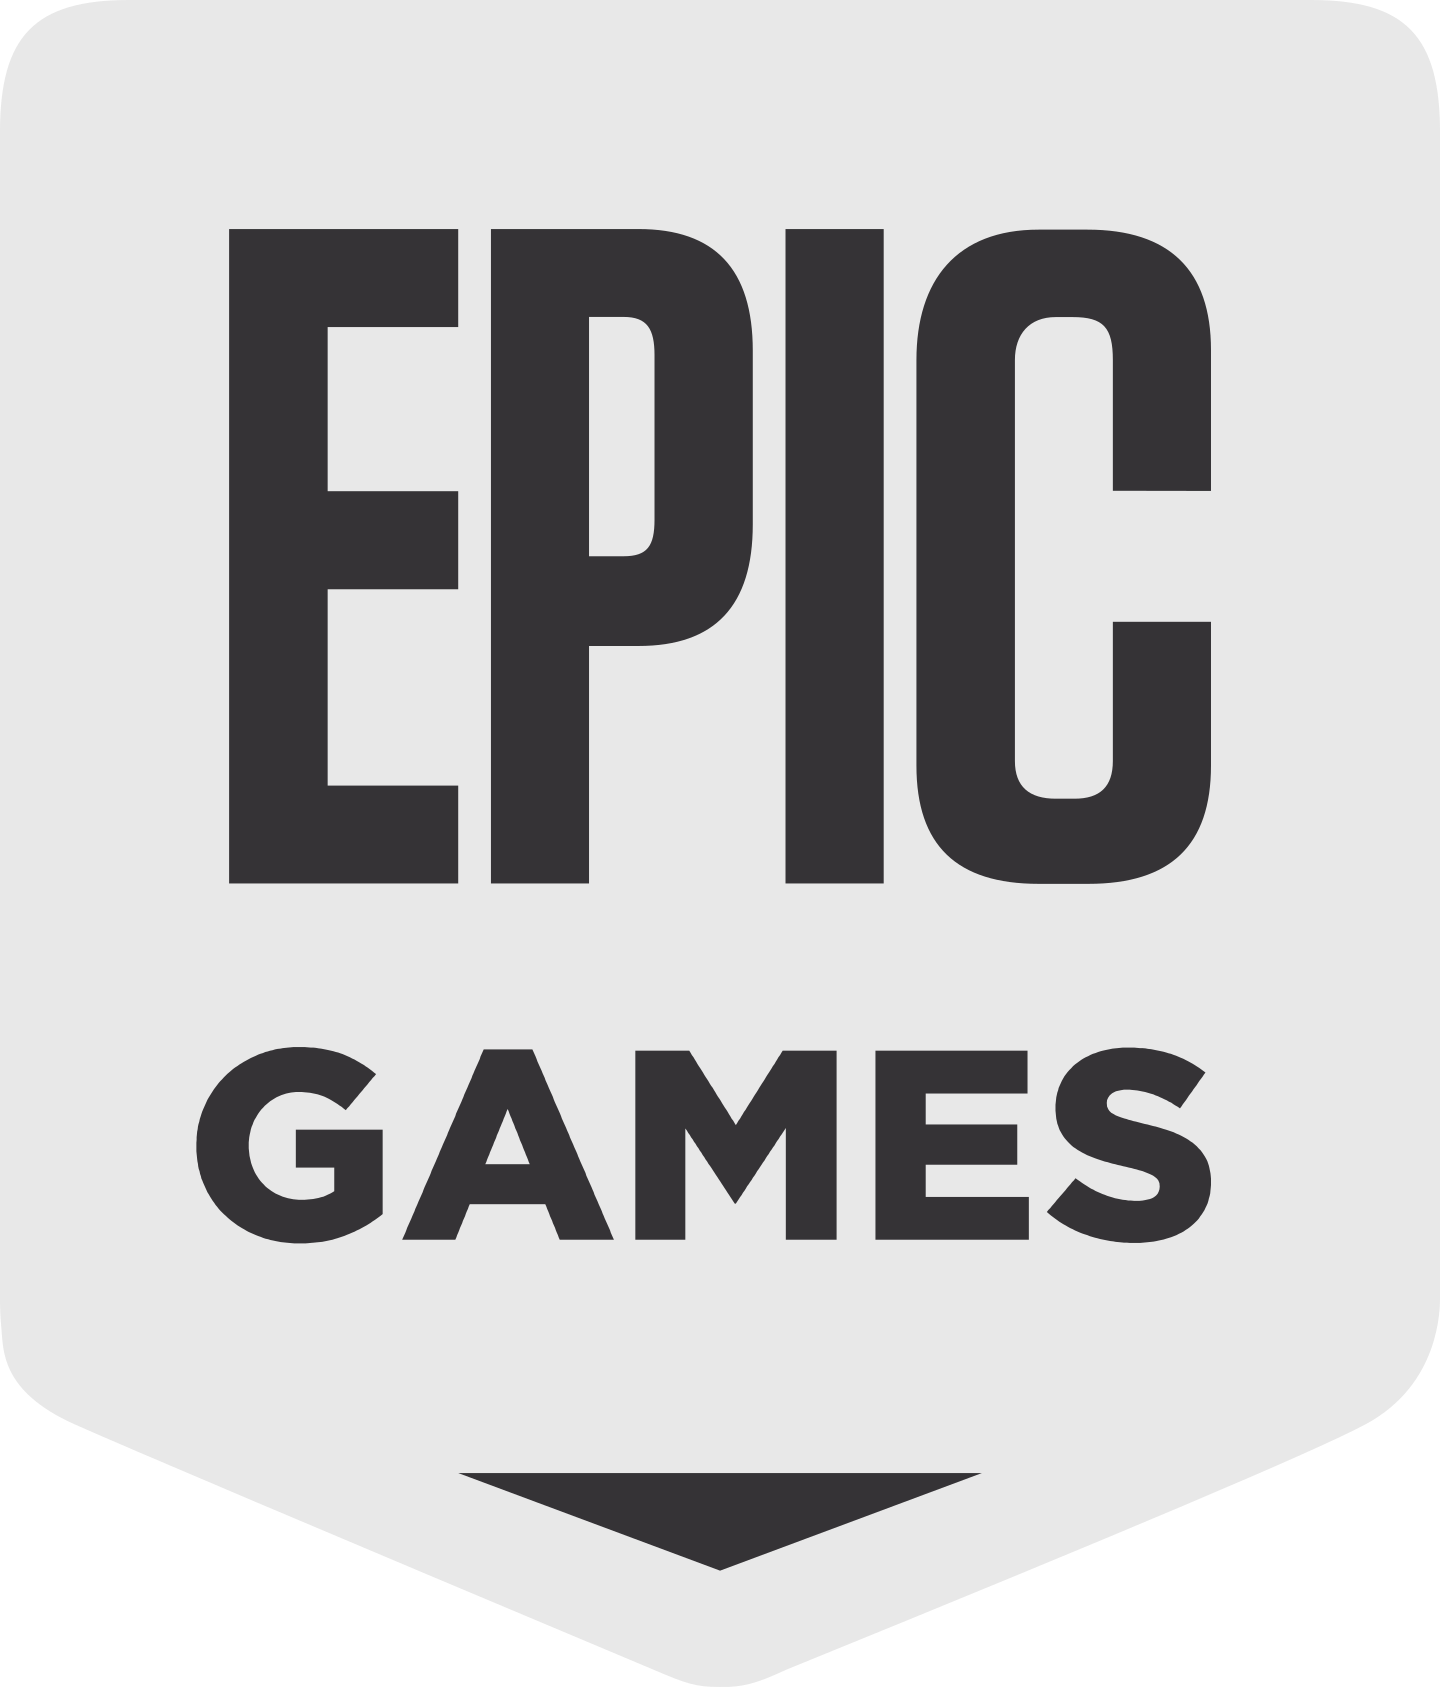 epic games logo 2 - Epic Games Logo